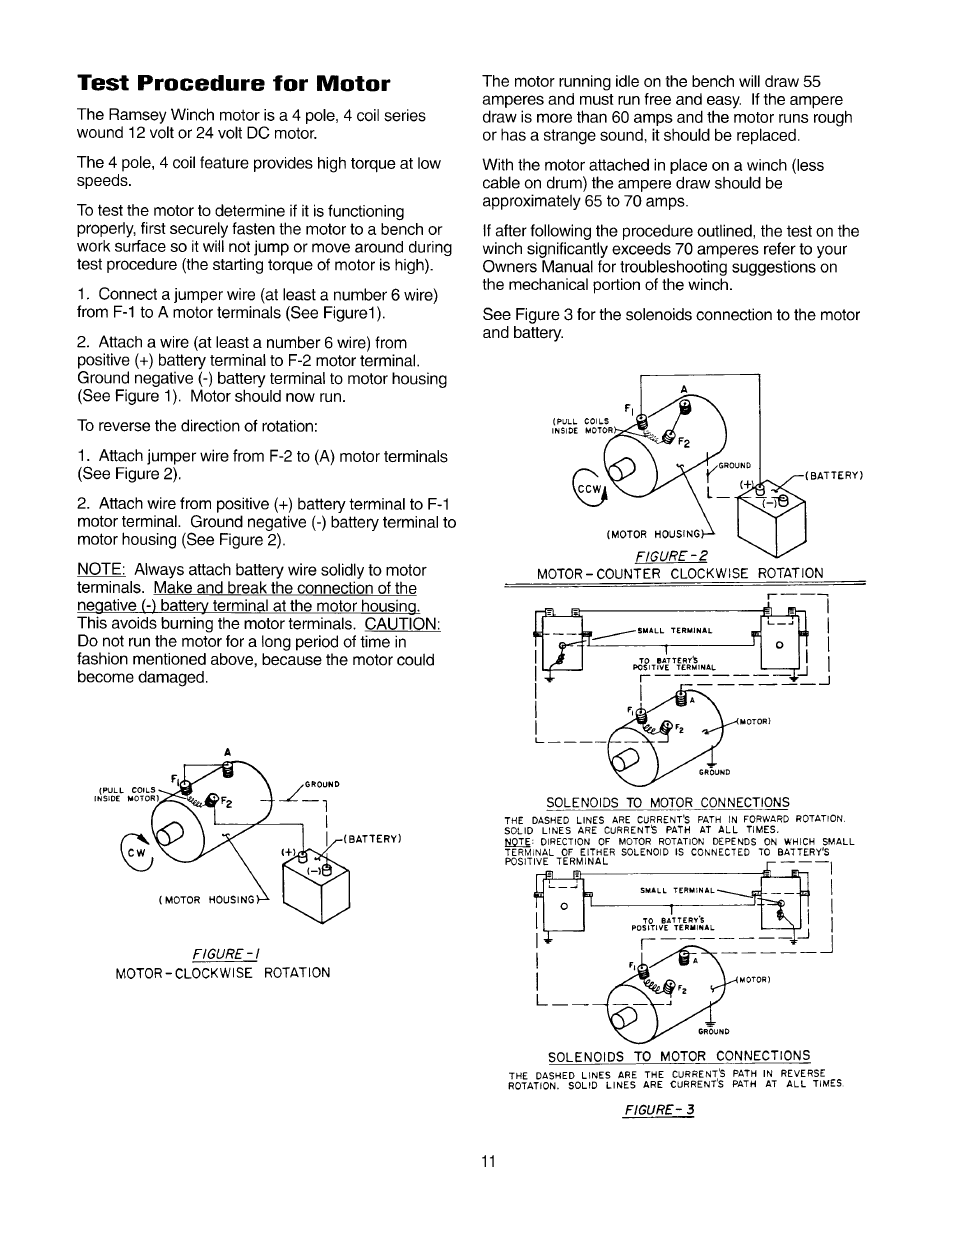 ramsey winch re 8000_10000_12000t page11?resize\\\\\=665%2C861 post winch solenoid wiring diagram 6 amc solenoid wiring diagram 4 post continuous duty solenoid wiring diagram at mifinder.co